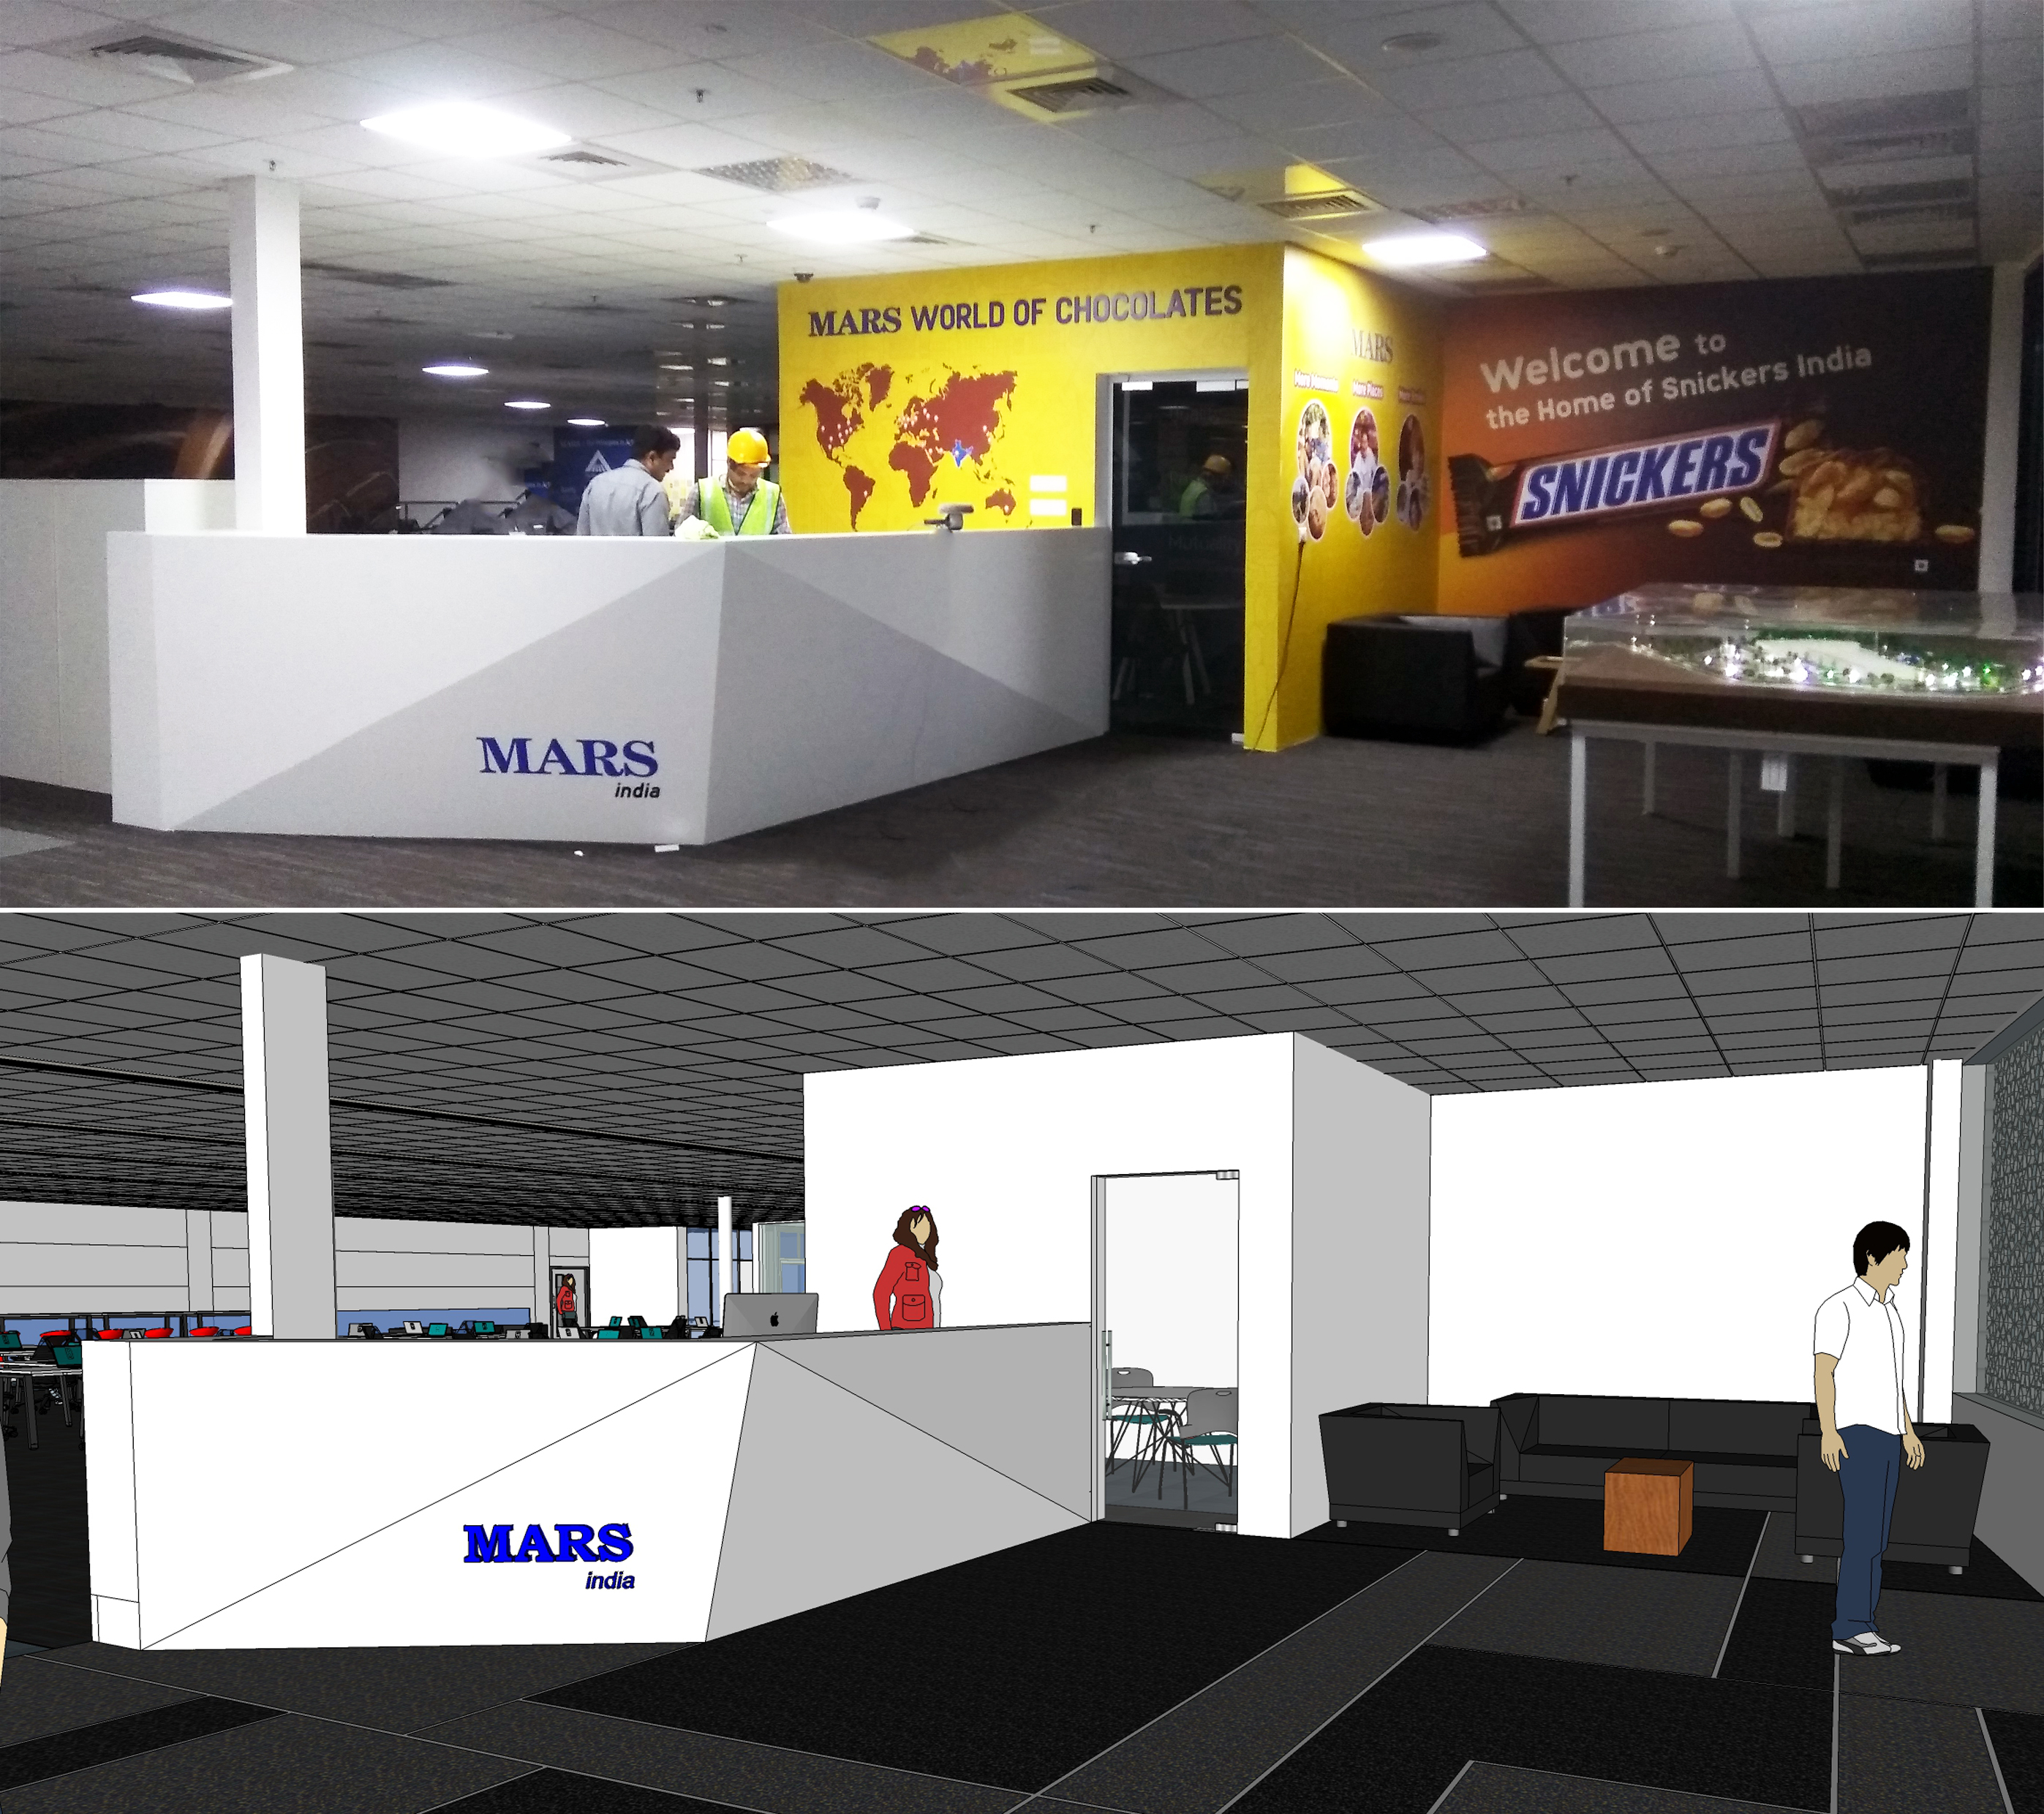 Mars India reception desk